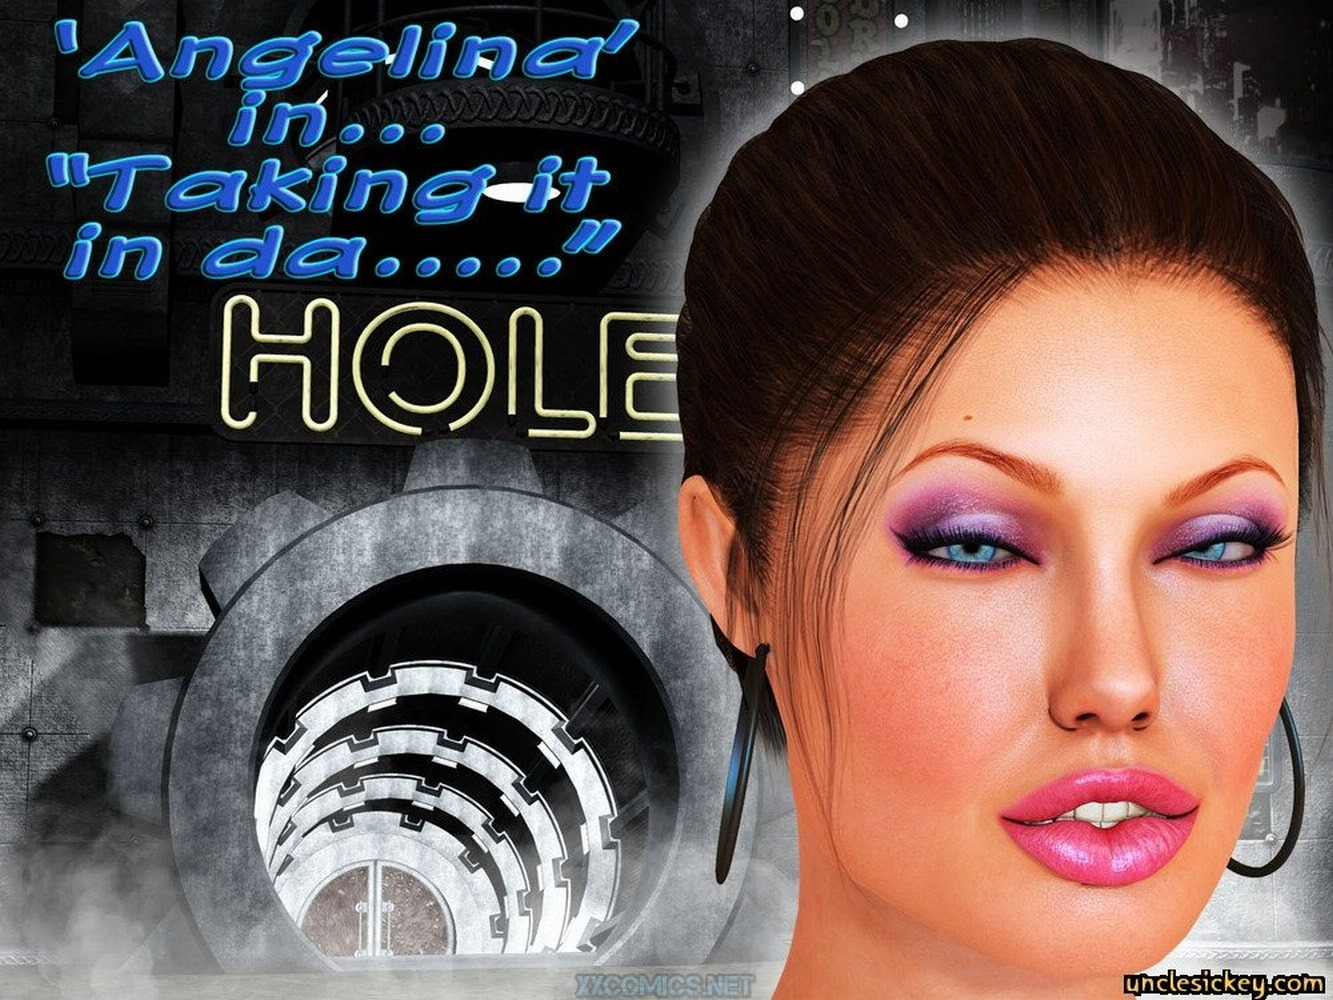 Porn Comics - Angelina Taking it Hole- Uncle Sickey porn comics 8 muses